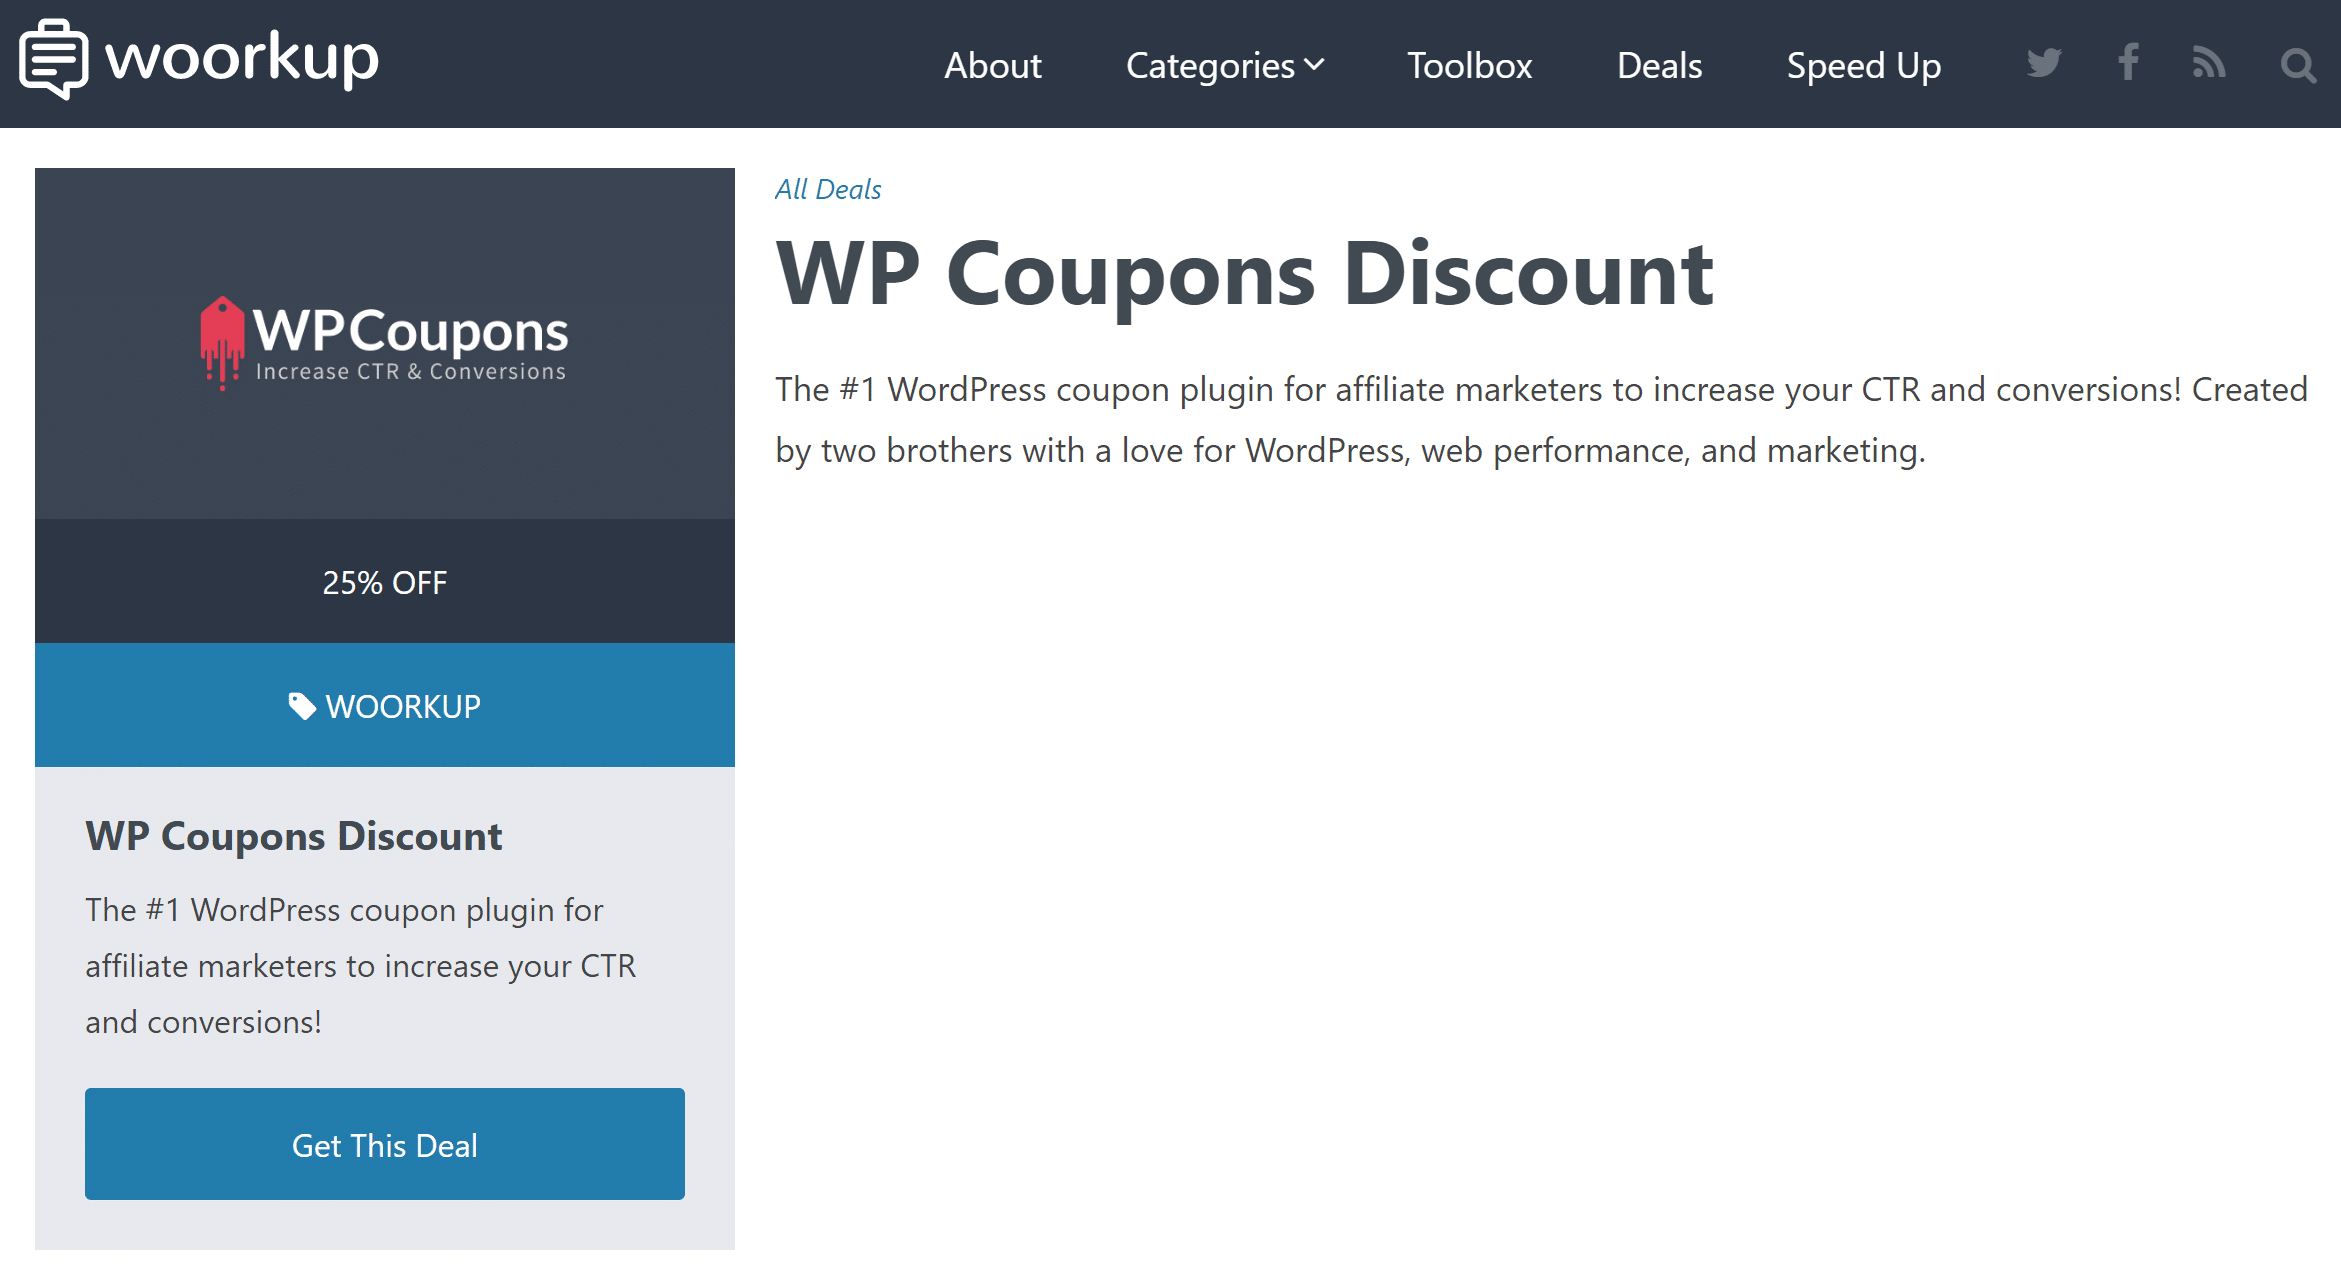 wp coupons layout left